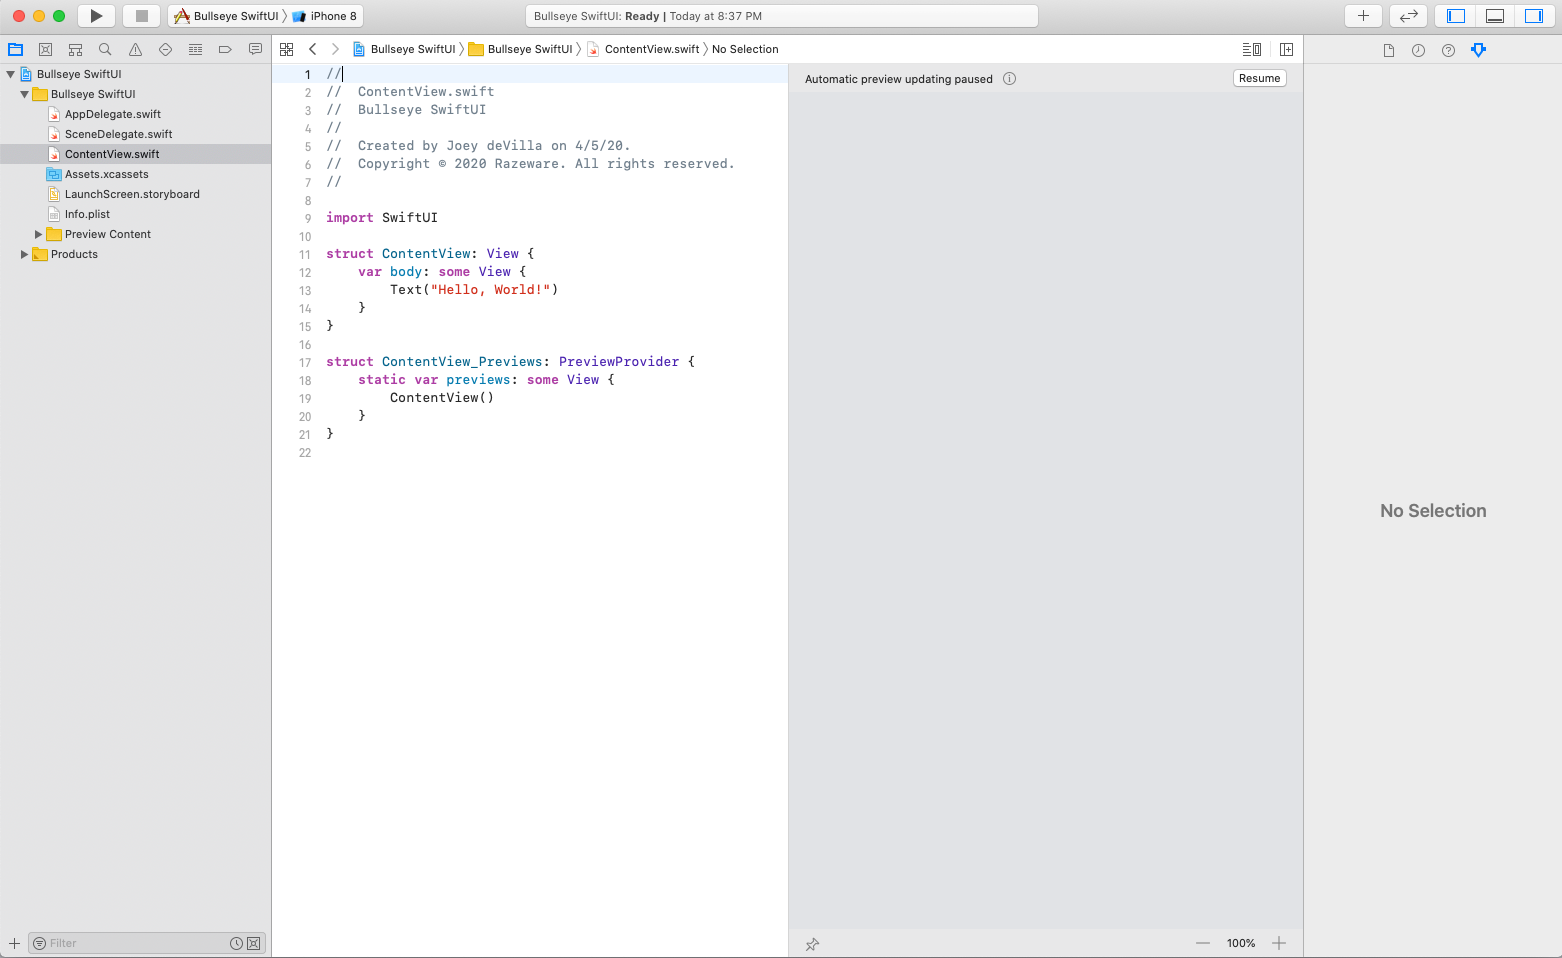 Xcode displays a new SwiftUI project